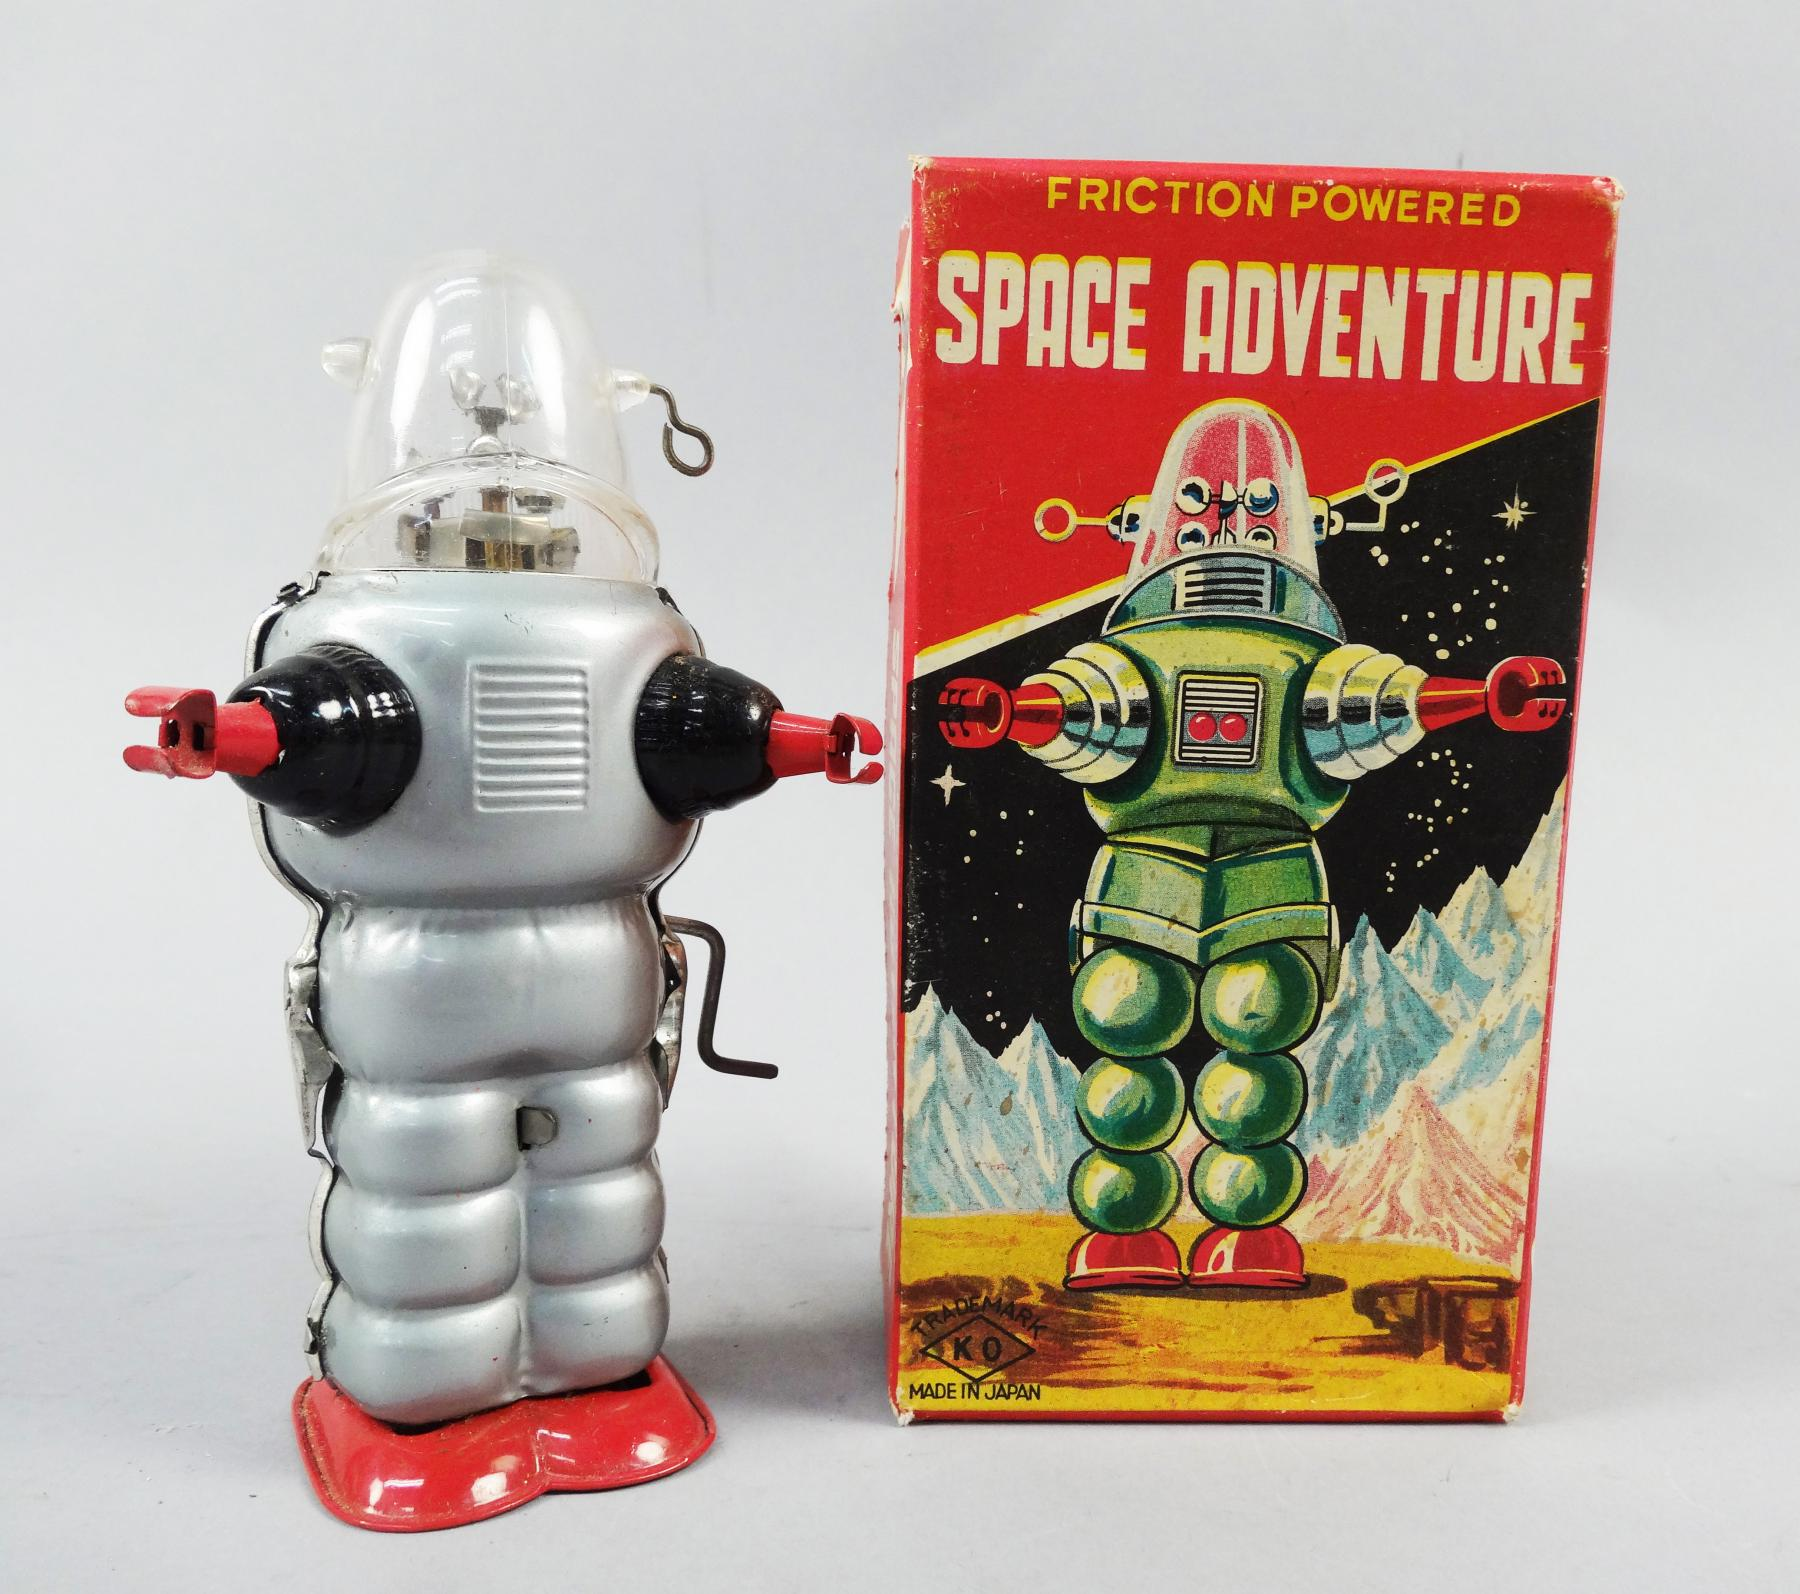 Rare Vintage Boxed Mint Space Age 1950s Mechanical Toy Robot